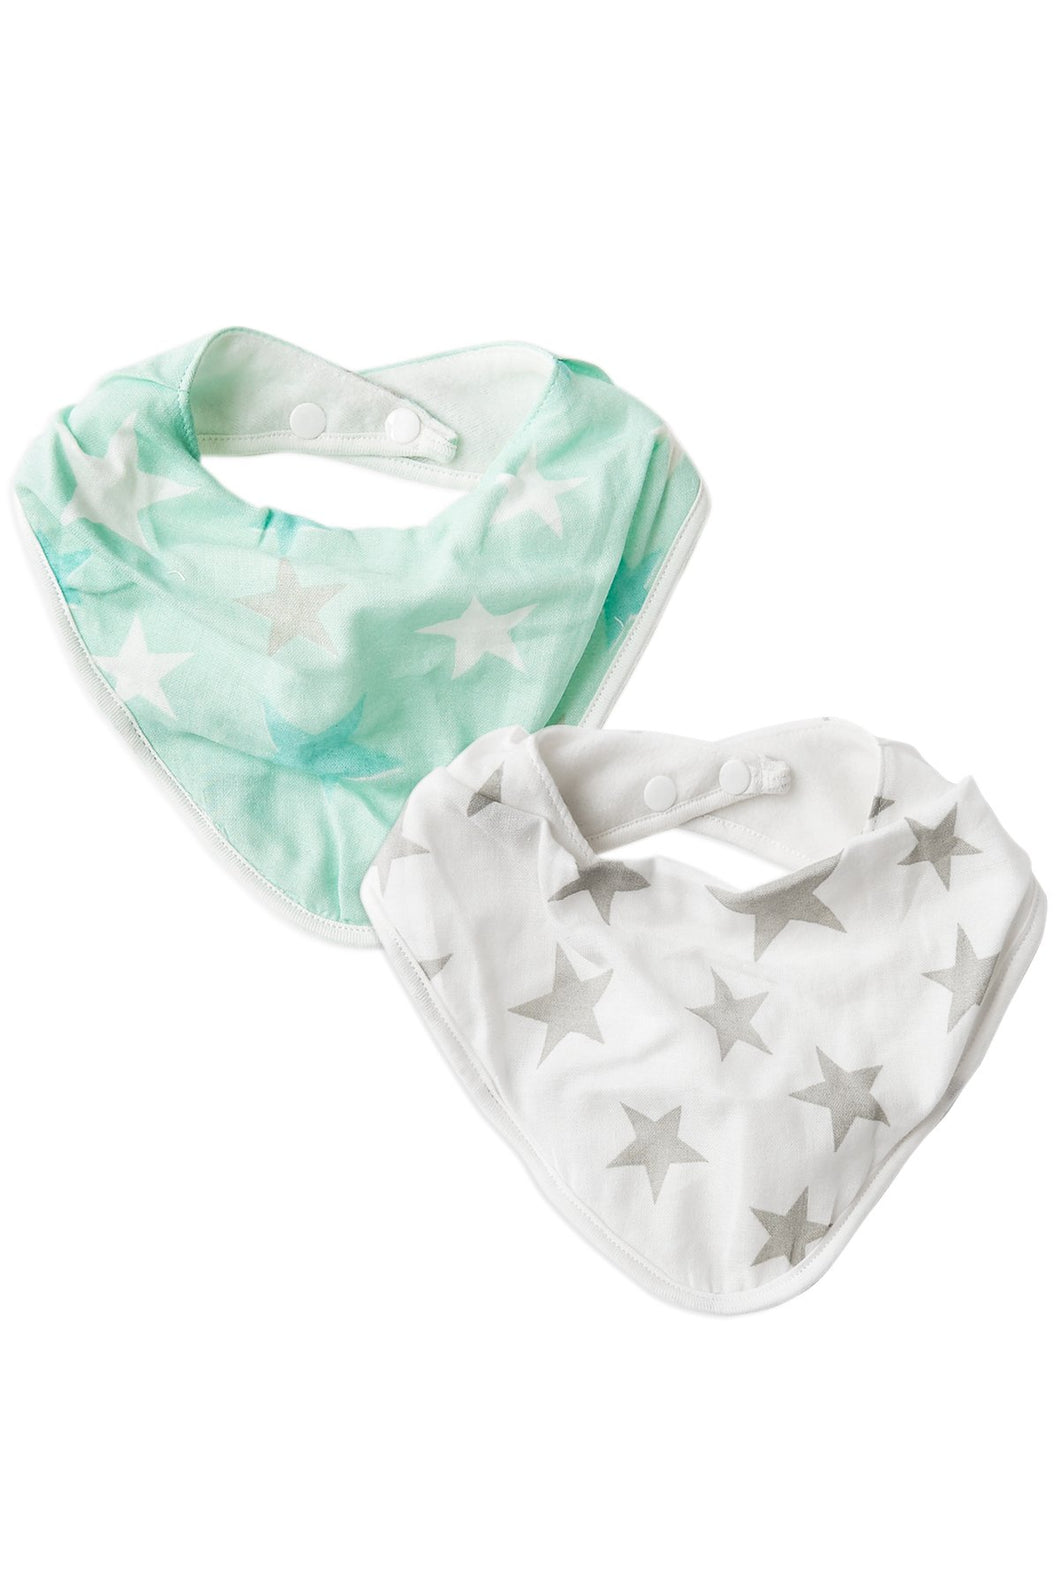 2pk Bibs Mint and Grey Stars by The Little Linen Company